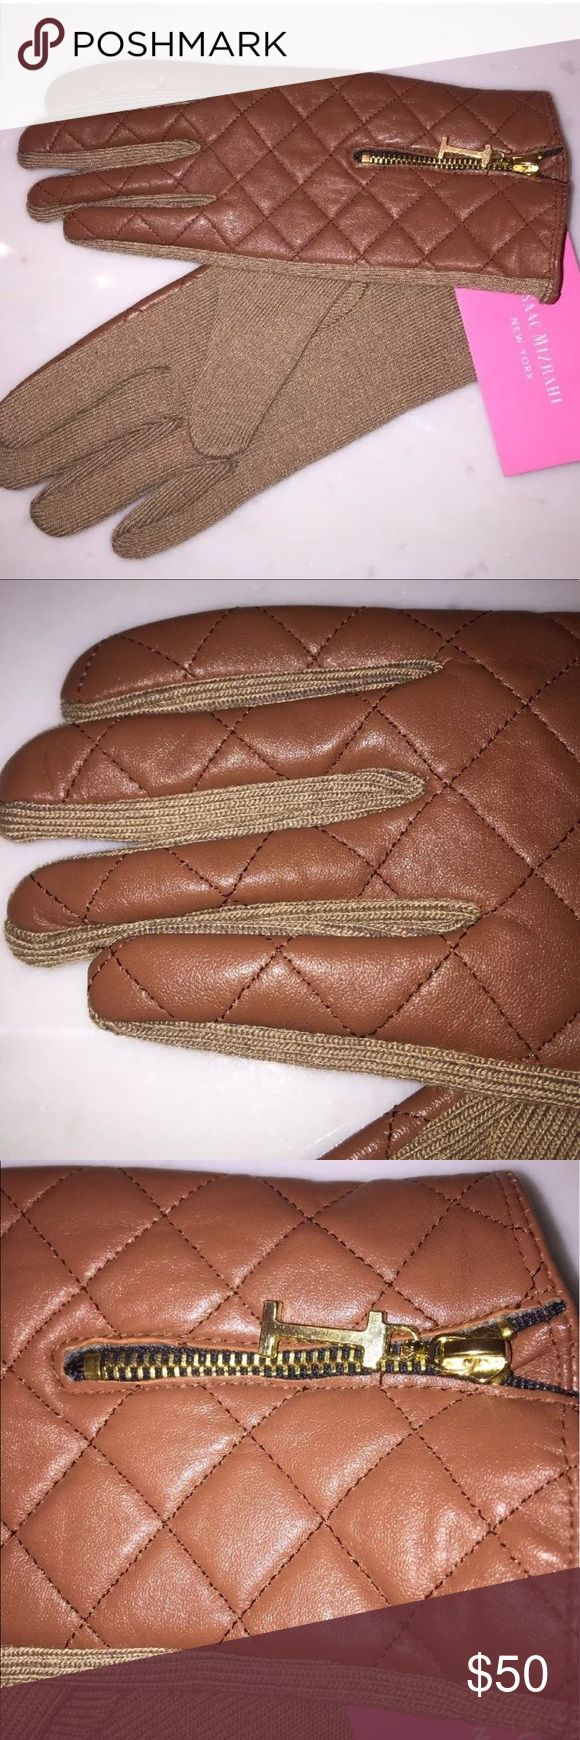 """Isaac Mizrahi NY Quilted Leather Driving Gloves Isaac Mizrahi New York Brown quilted leather upper, camel colored Knit palm.  Gold toned zipper with """"I"""" zipper pull.  Brand new with tags. New with Tags Isaac Mizrahi Accessories Gloves & Mittens"""